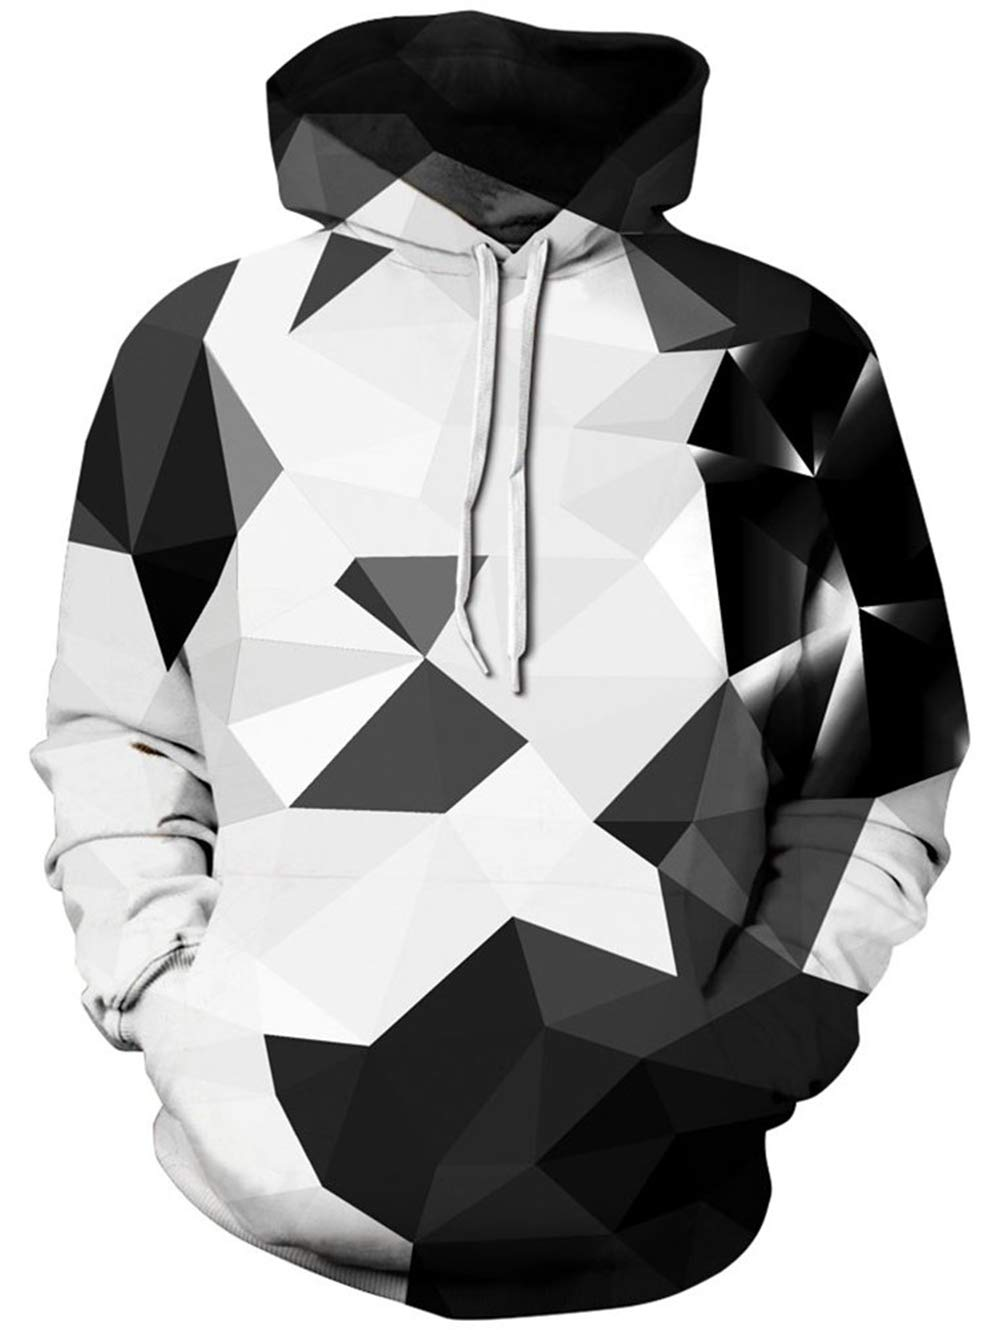 TUONROAD Unisex Fit Awesome Hoody Shirt Coat Black White Grey Geometry Color Block Funny Custom Amazing 3D Graphic Pattern Realistic Sweatshirt Big and Tall Cool Unique Athletic Pullover